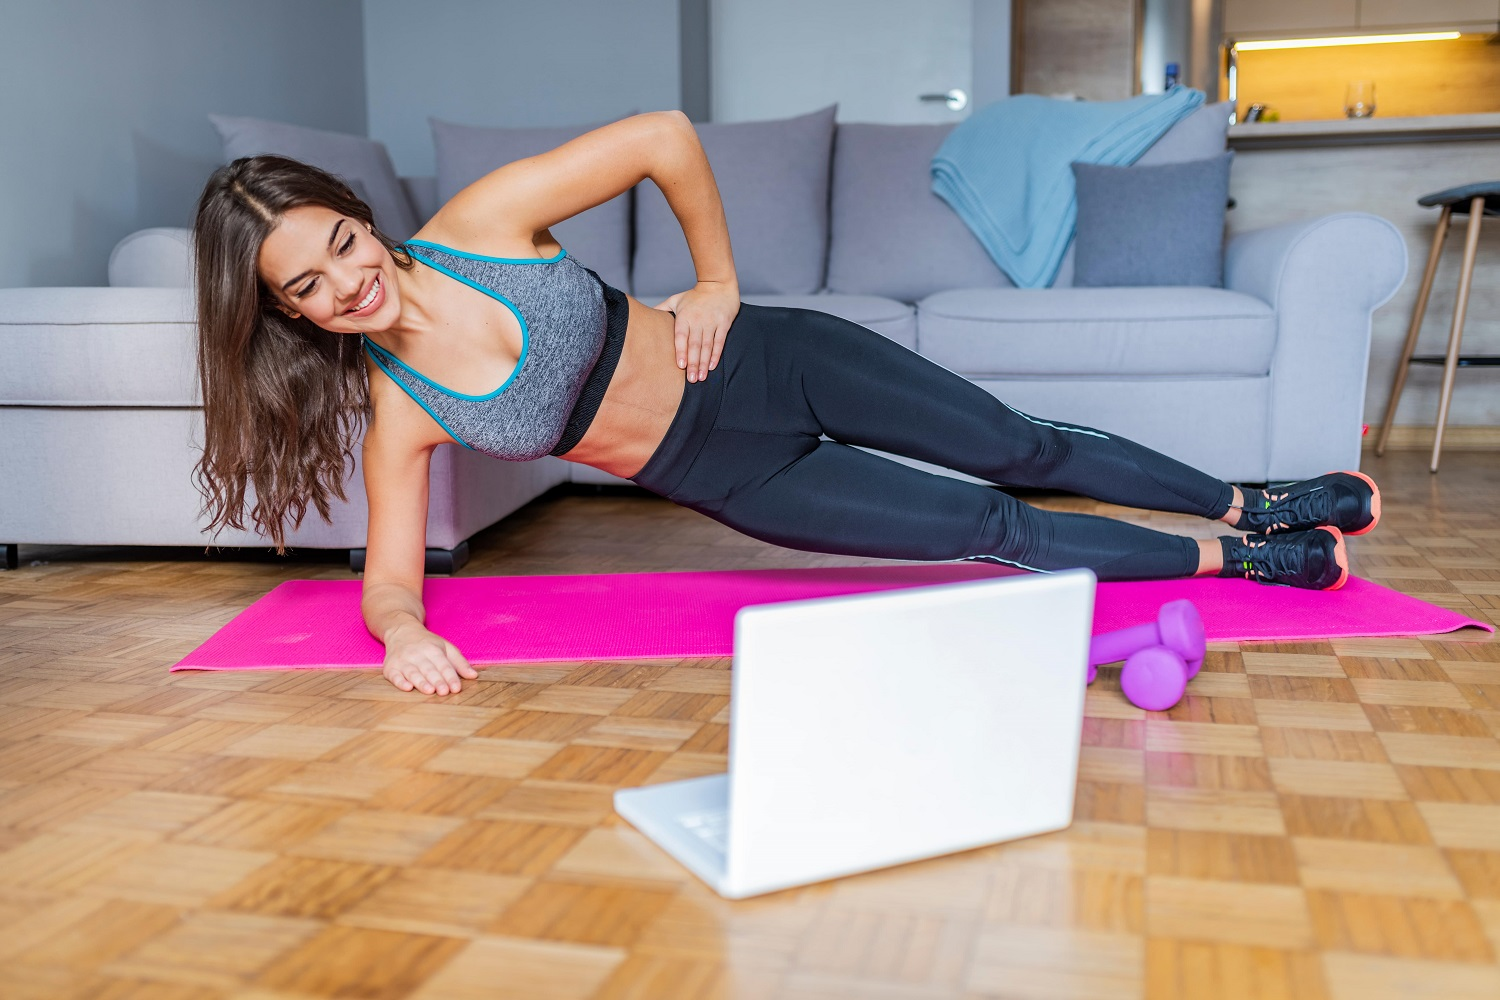 Stretch before and after each workout session for better flexibility and muscle recovery